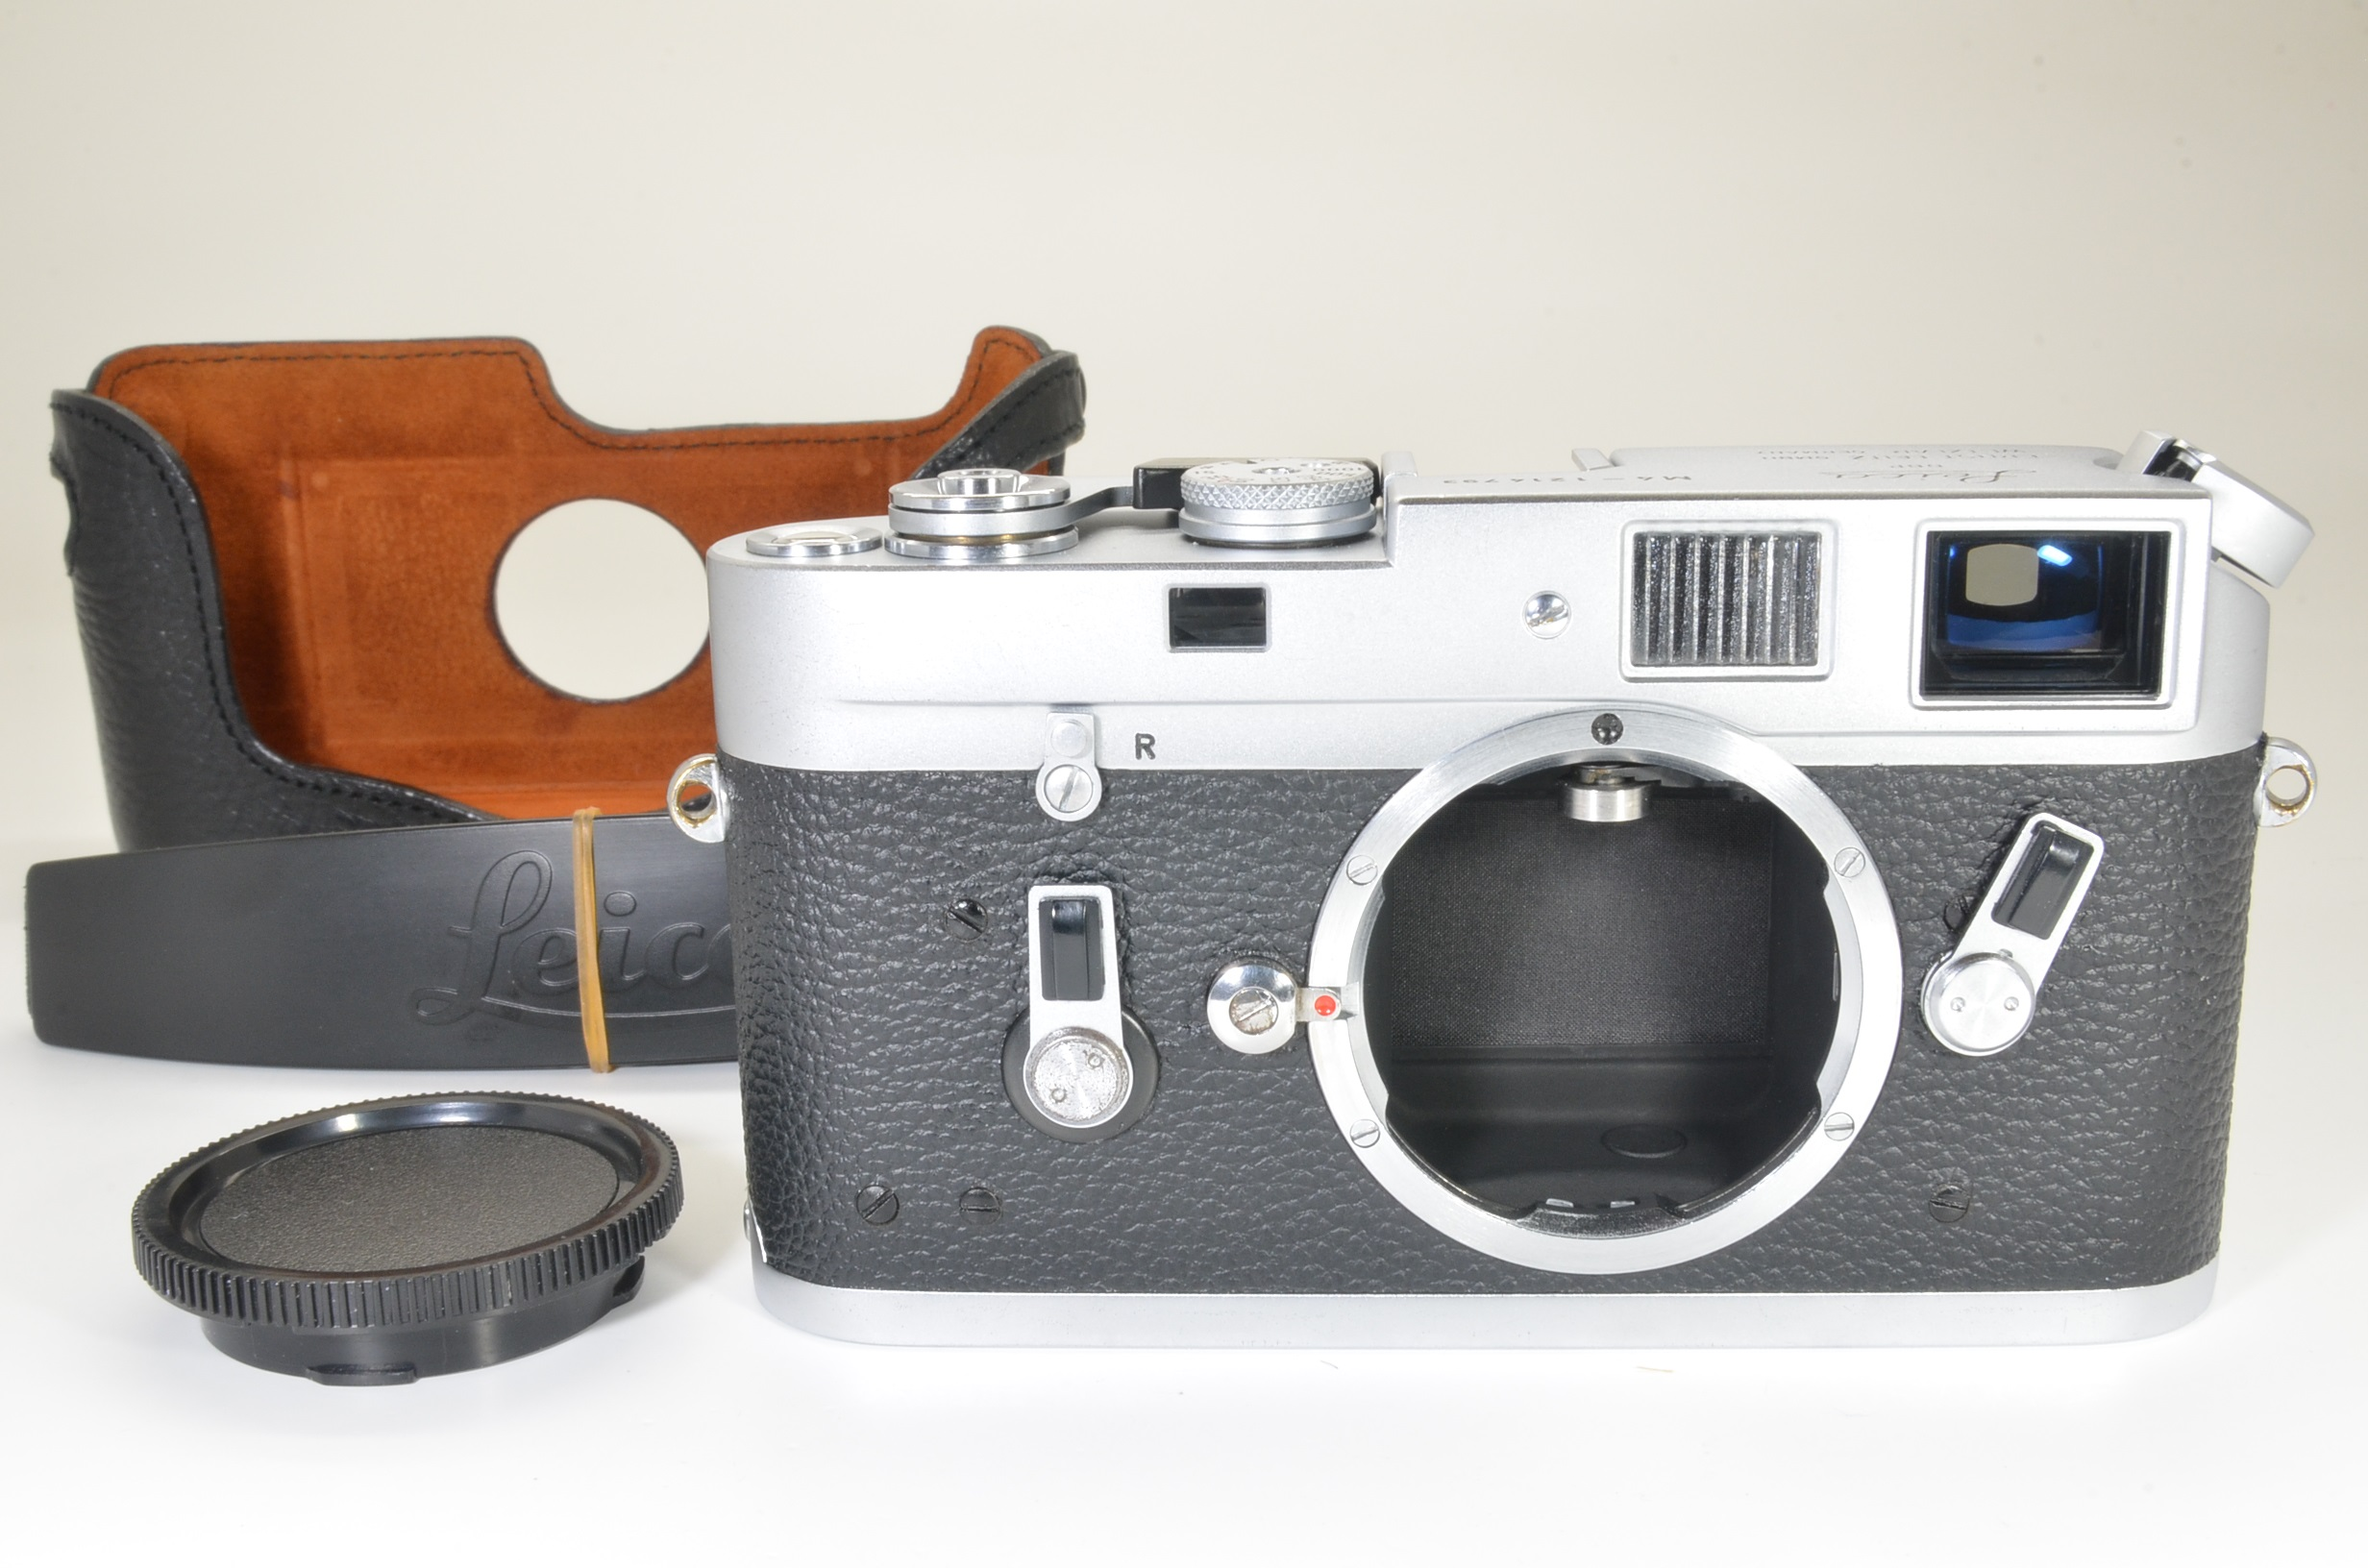 leica m4 silver chrome film camera s/n 1214793 year 1968 w/ case shooting tested